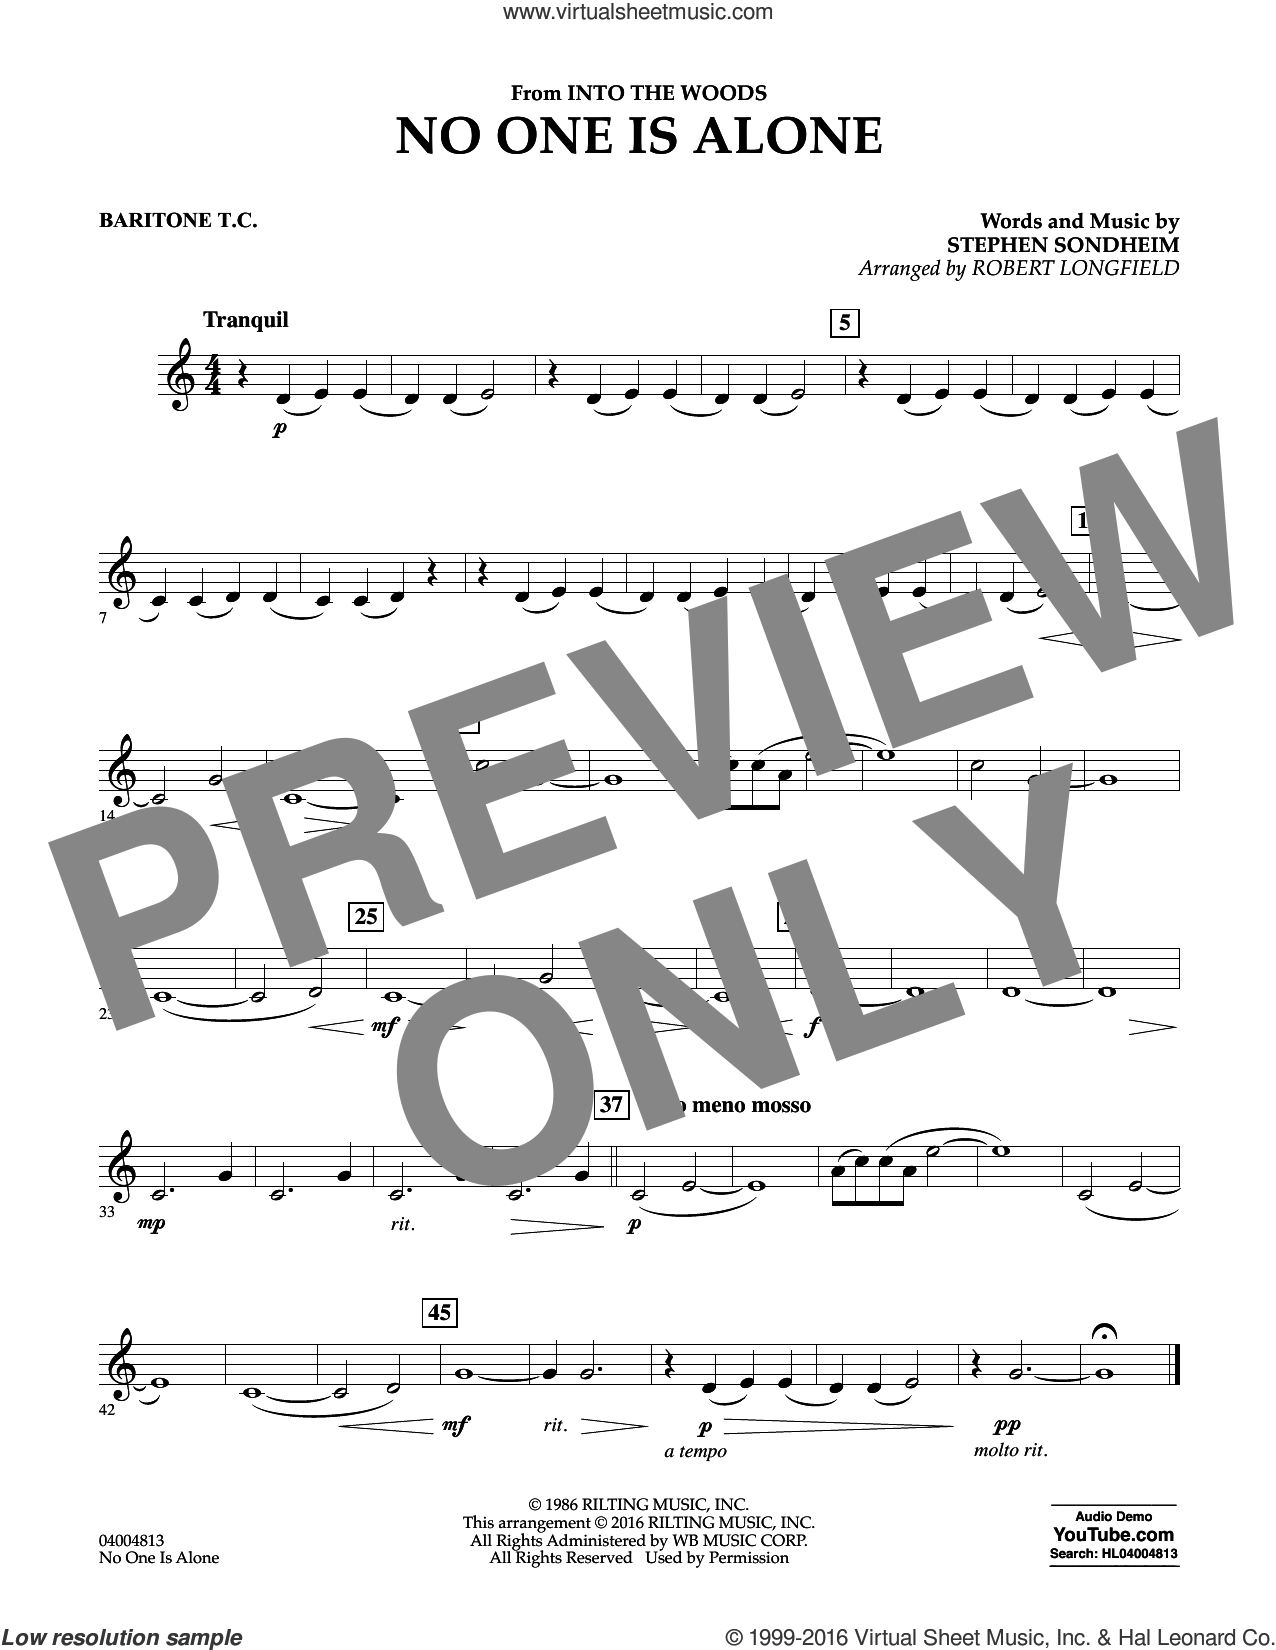 No One Is Alone sheet music for concert band (baritone t.c.) by Stephen Sondheim and Robert Longfield, intermediate skill level